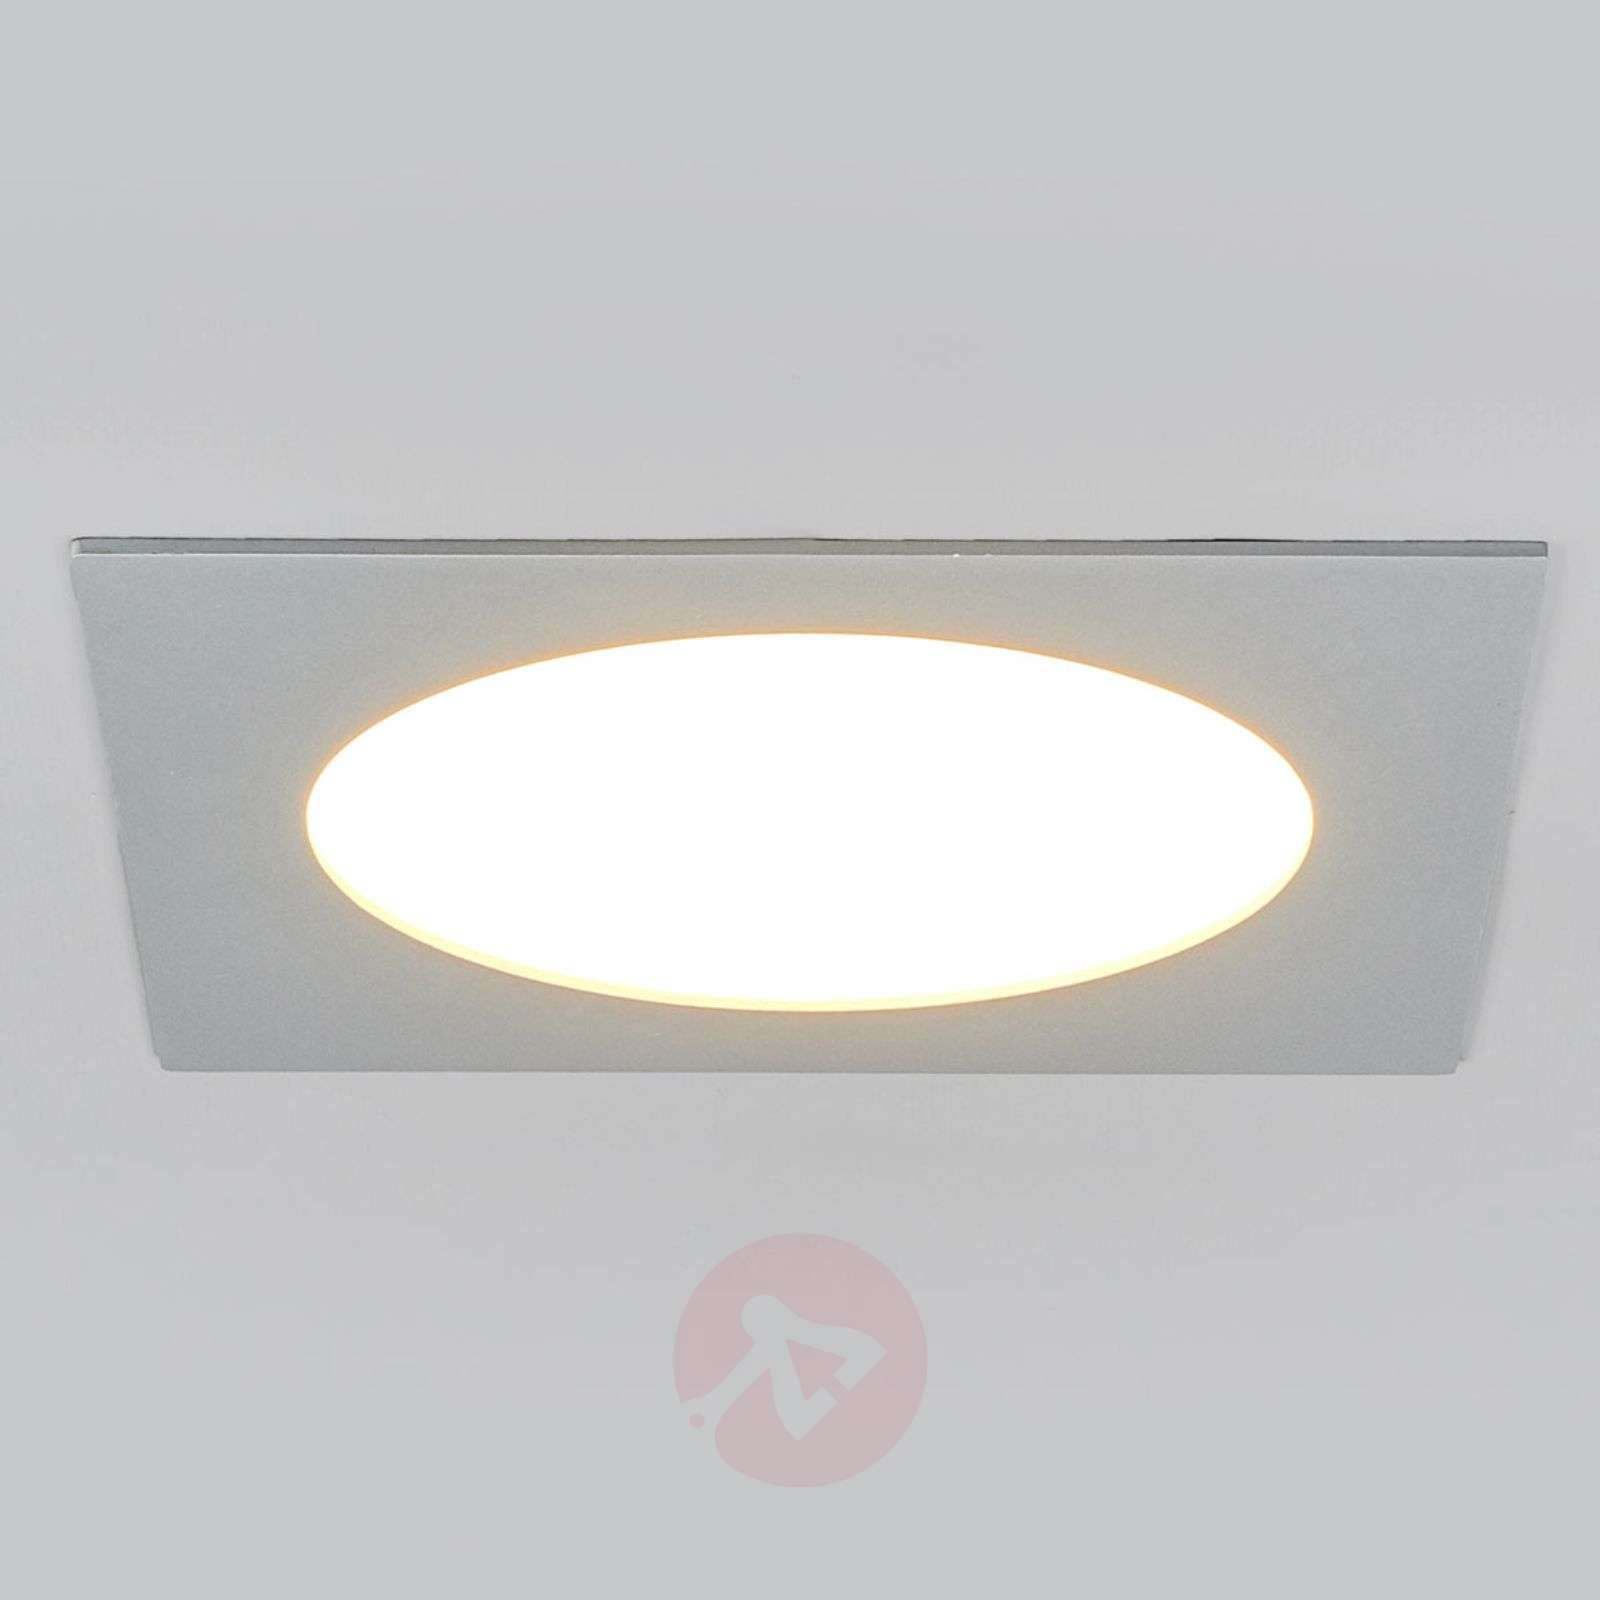 Led-inbouwlamp PRINCE, vierkant 11W-3012182X-01